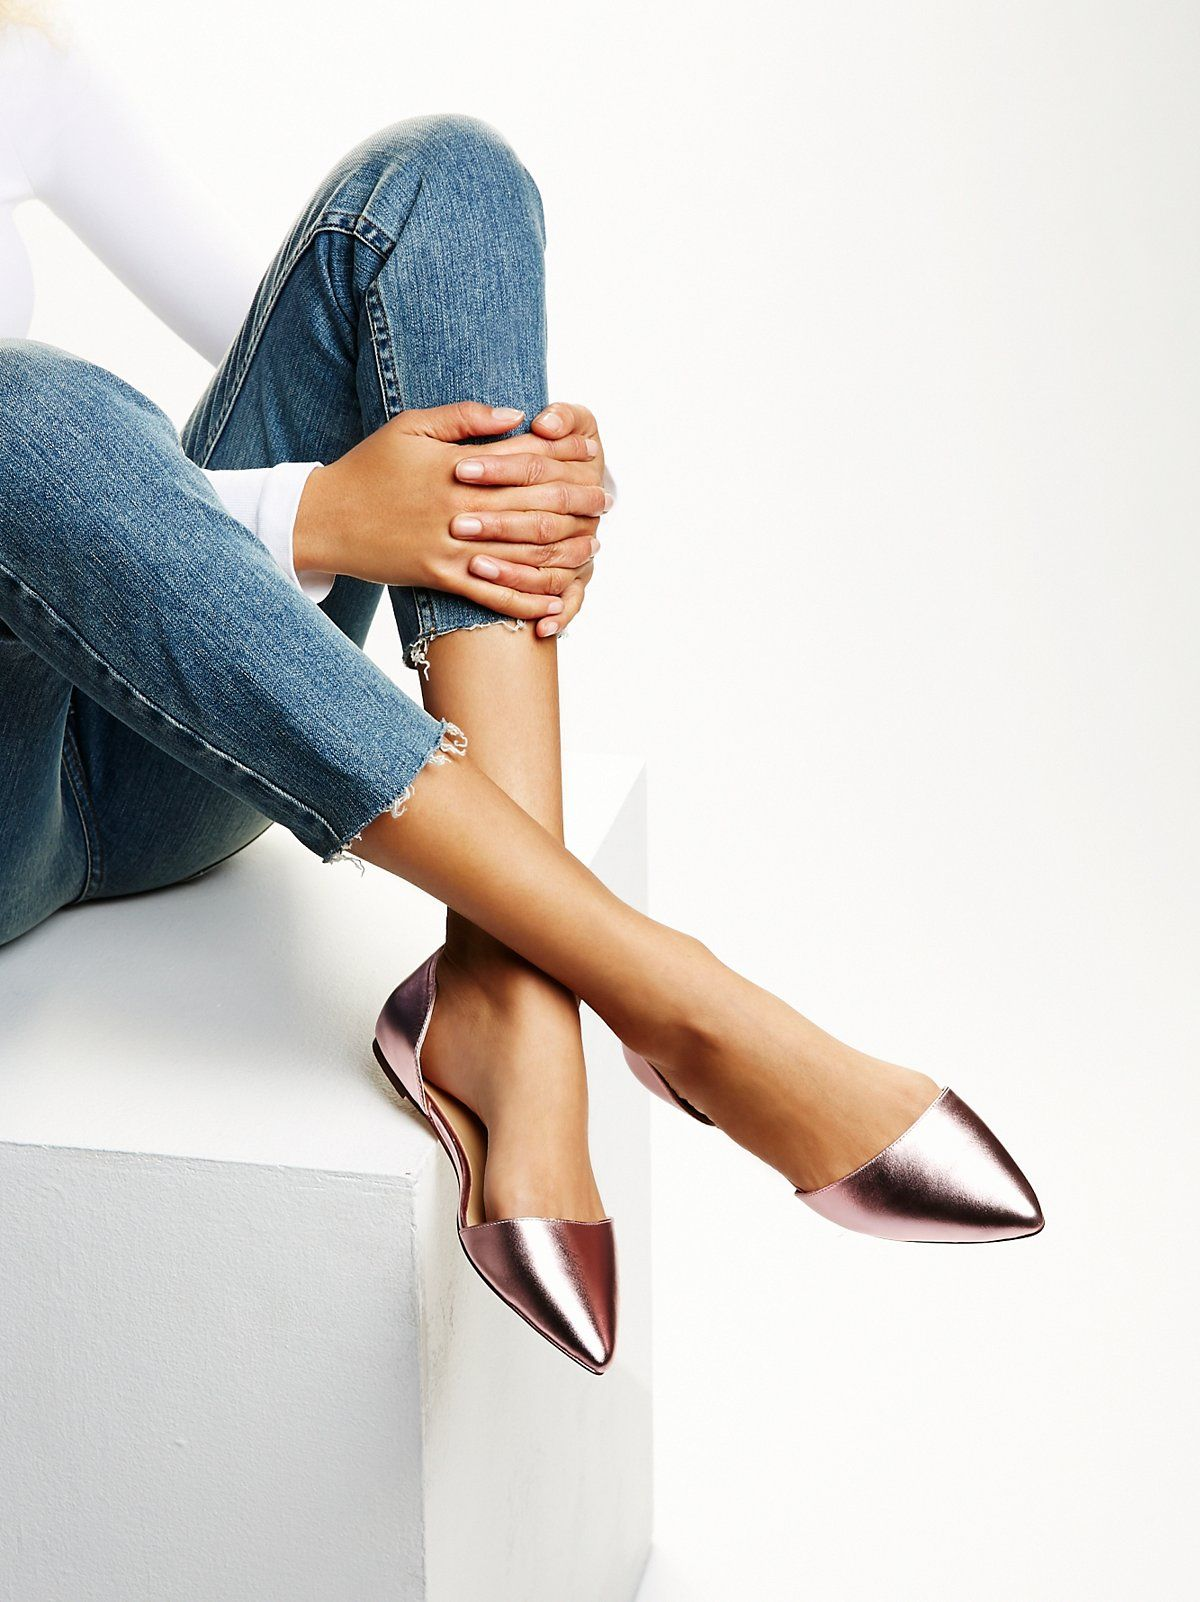 separation shoes 904d6 abc7a Cloud Dancer Flat  Super sleek and chic metallic flat with an open design  and a pretty pointed toe. Padded at the footbed for an effortless, comfy  step.